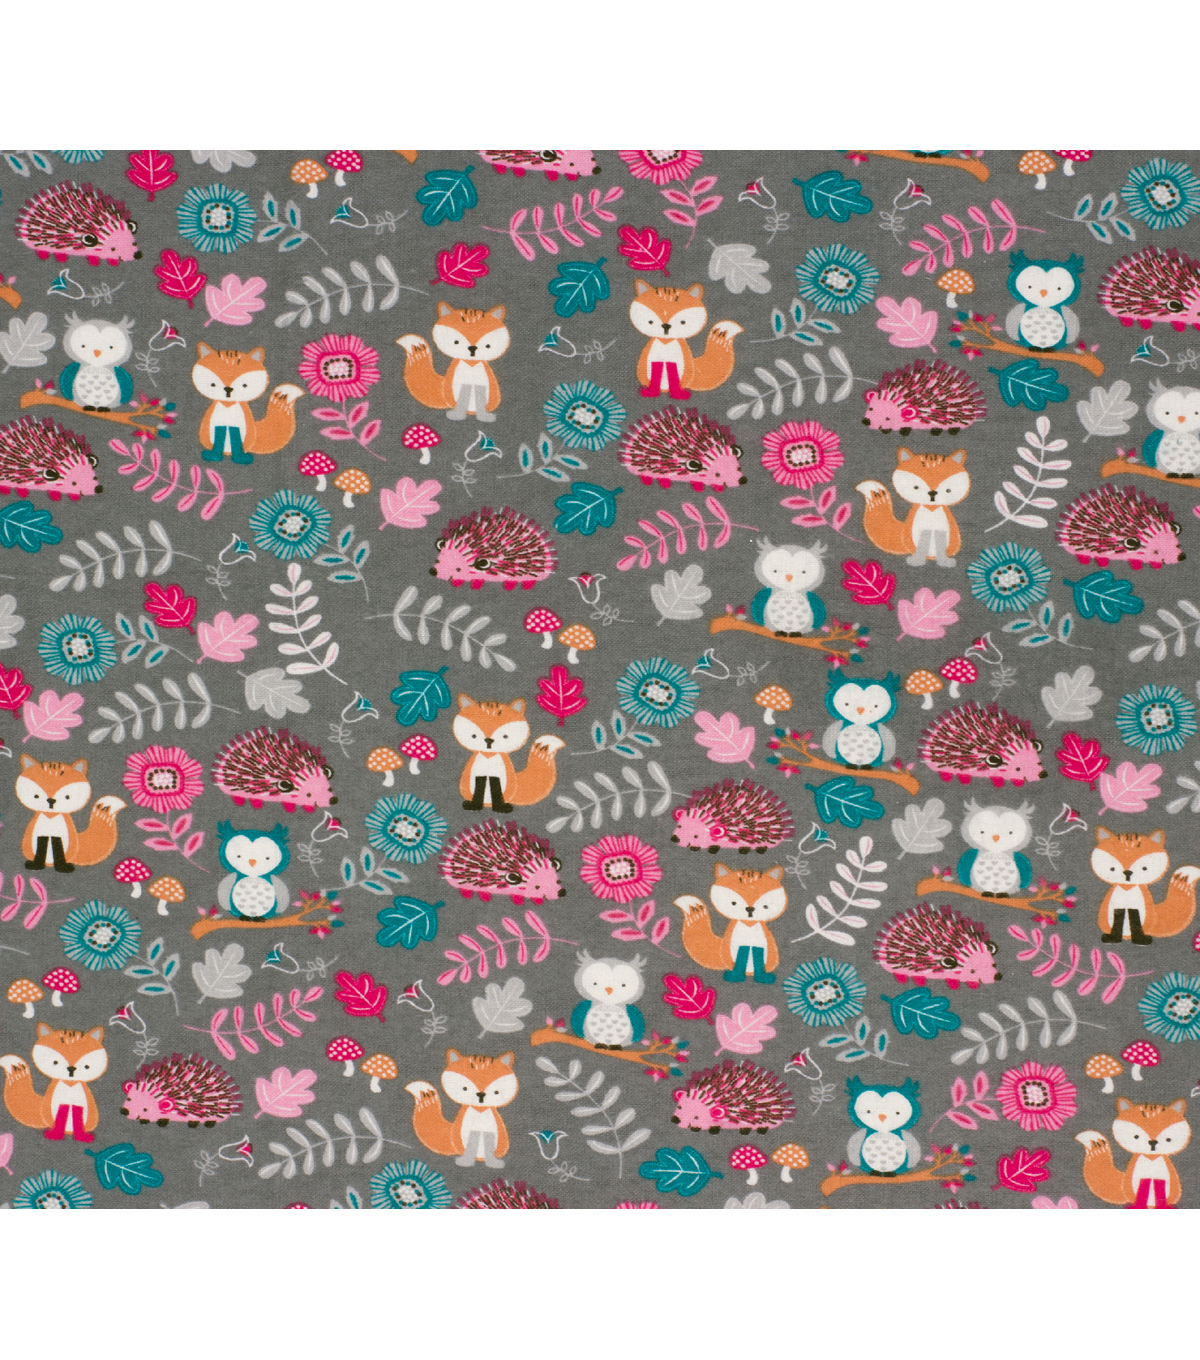 Super Snuggle Flannel Fabric-Floral Animals